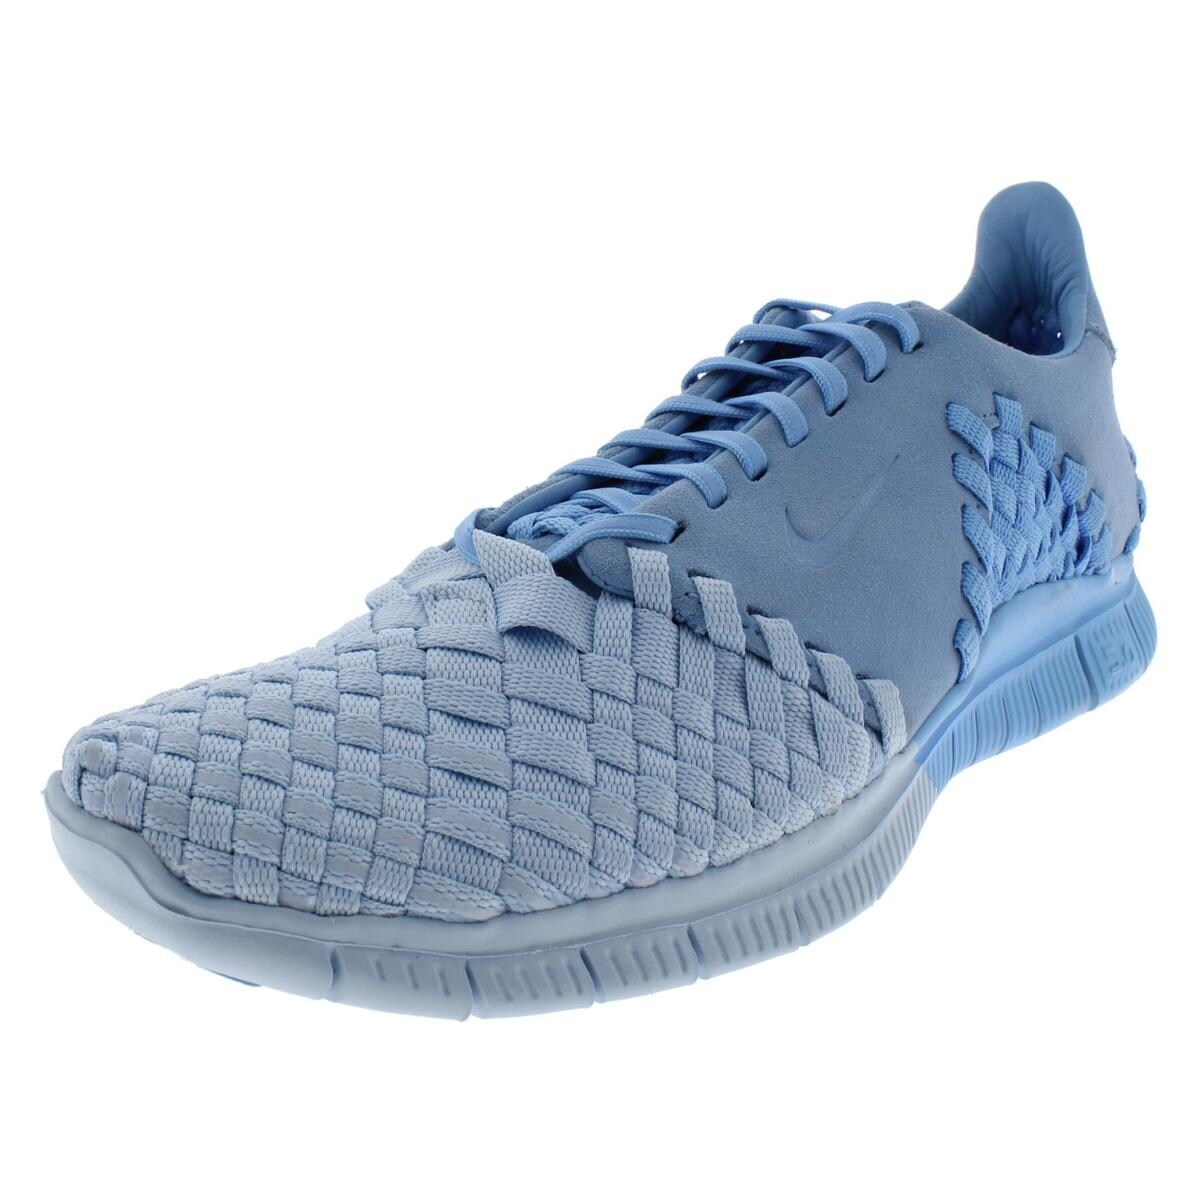 304e93ba1b95d Shop Nike Mens Free Inneva Woven II SP Running Shoes Low Top Sneaker ...